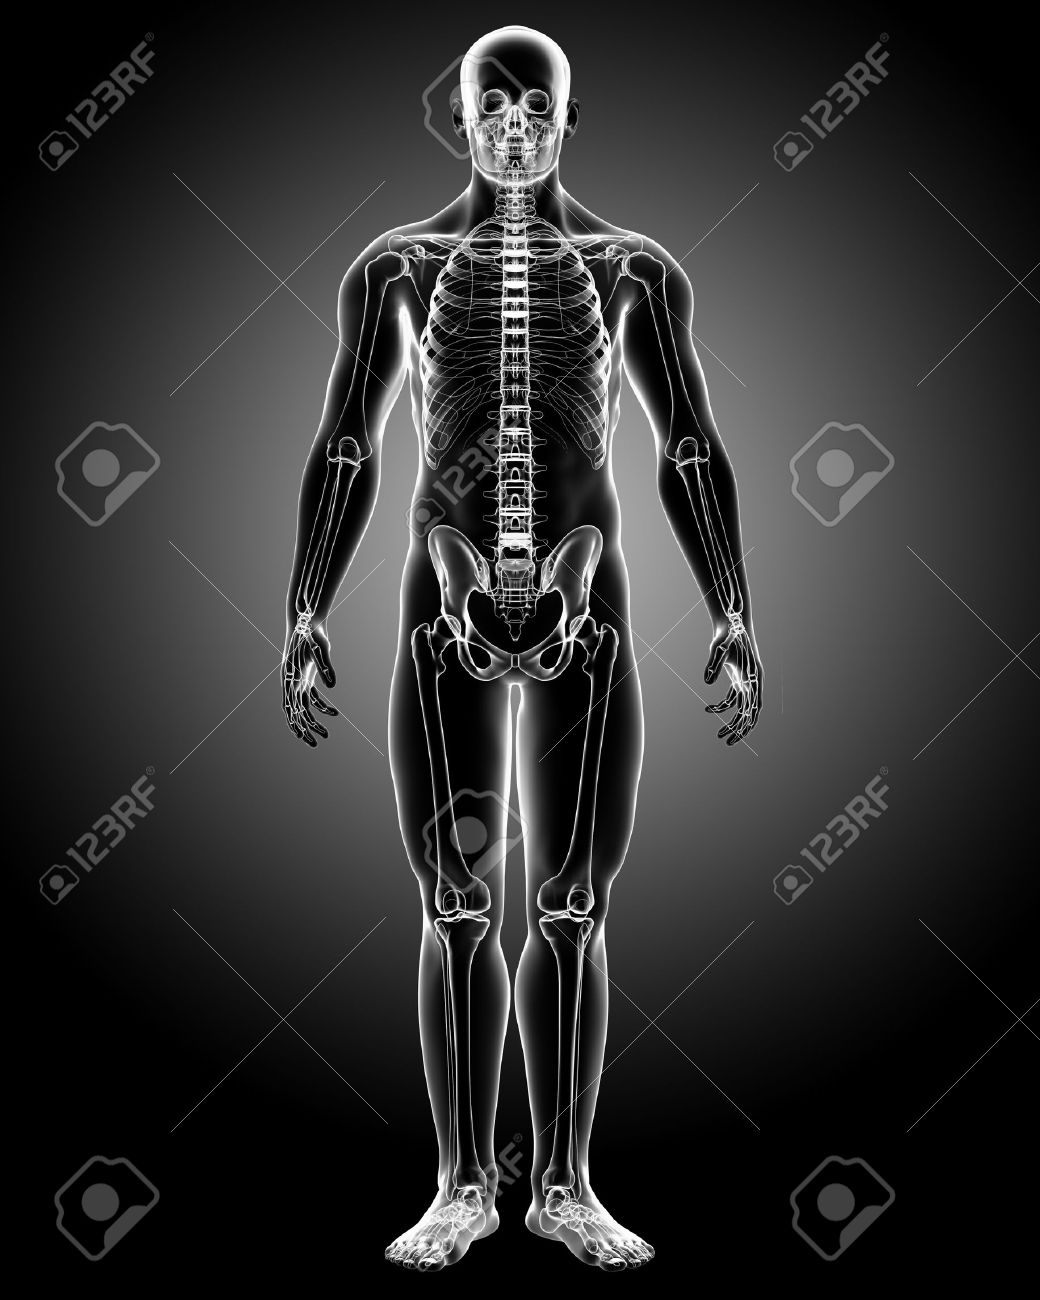 3d rendered medical x-ray illustration of male body X-ray anatomy Stock Photo - 13757470